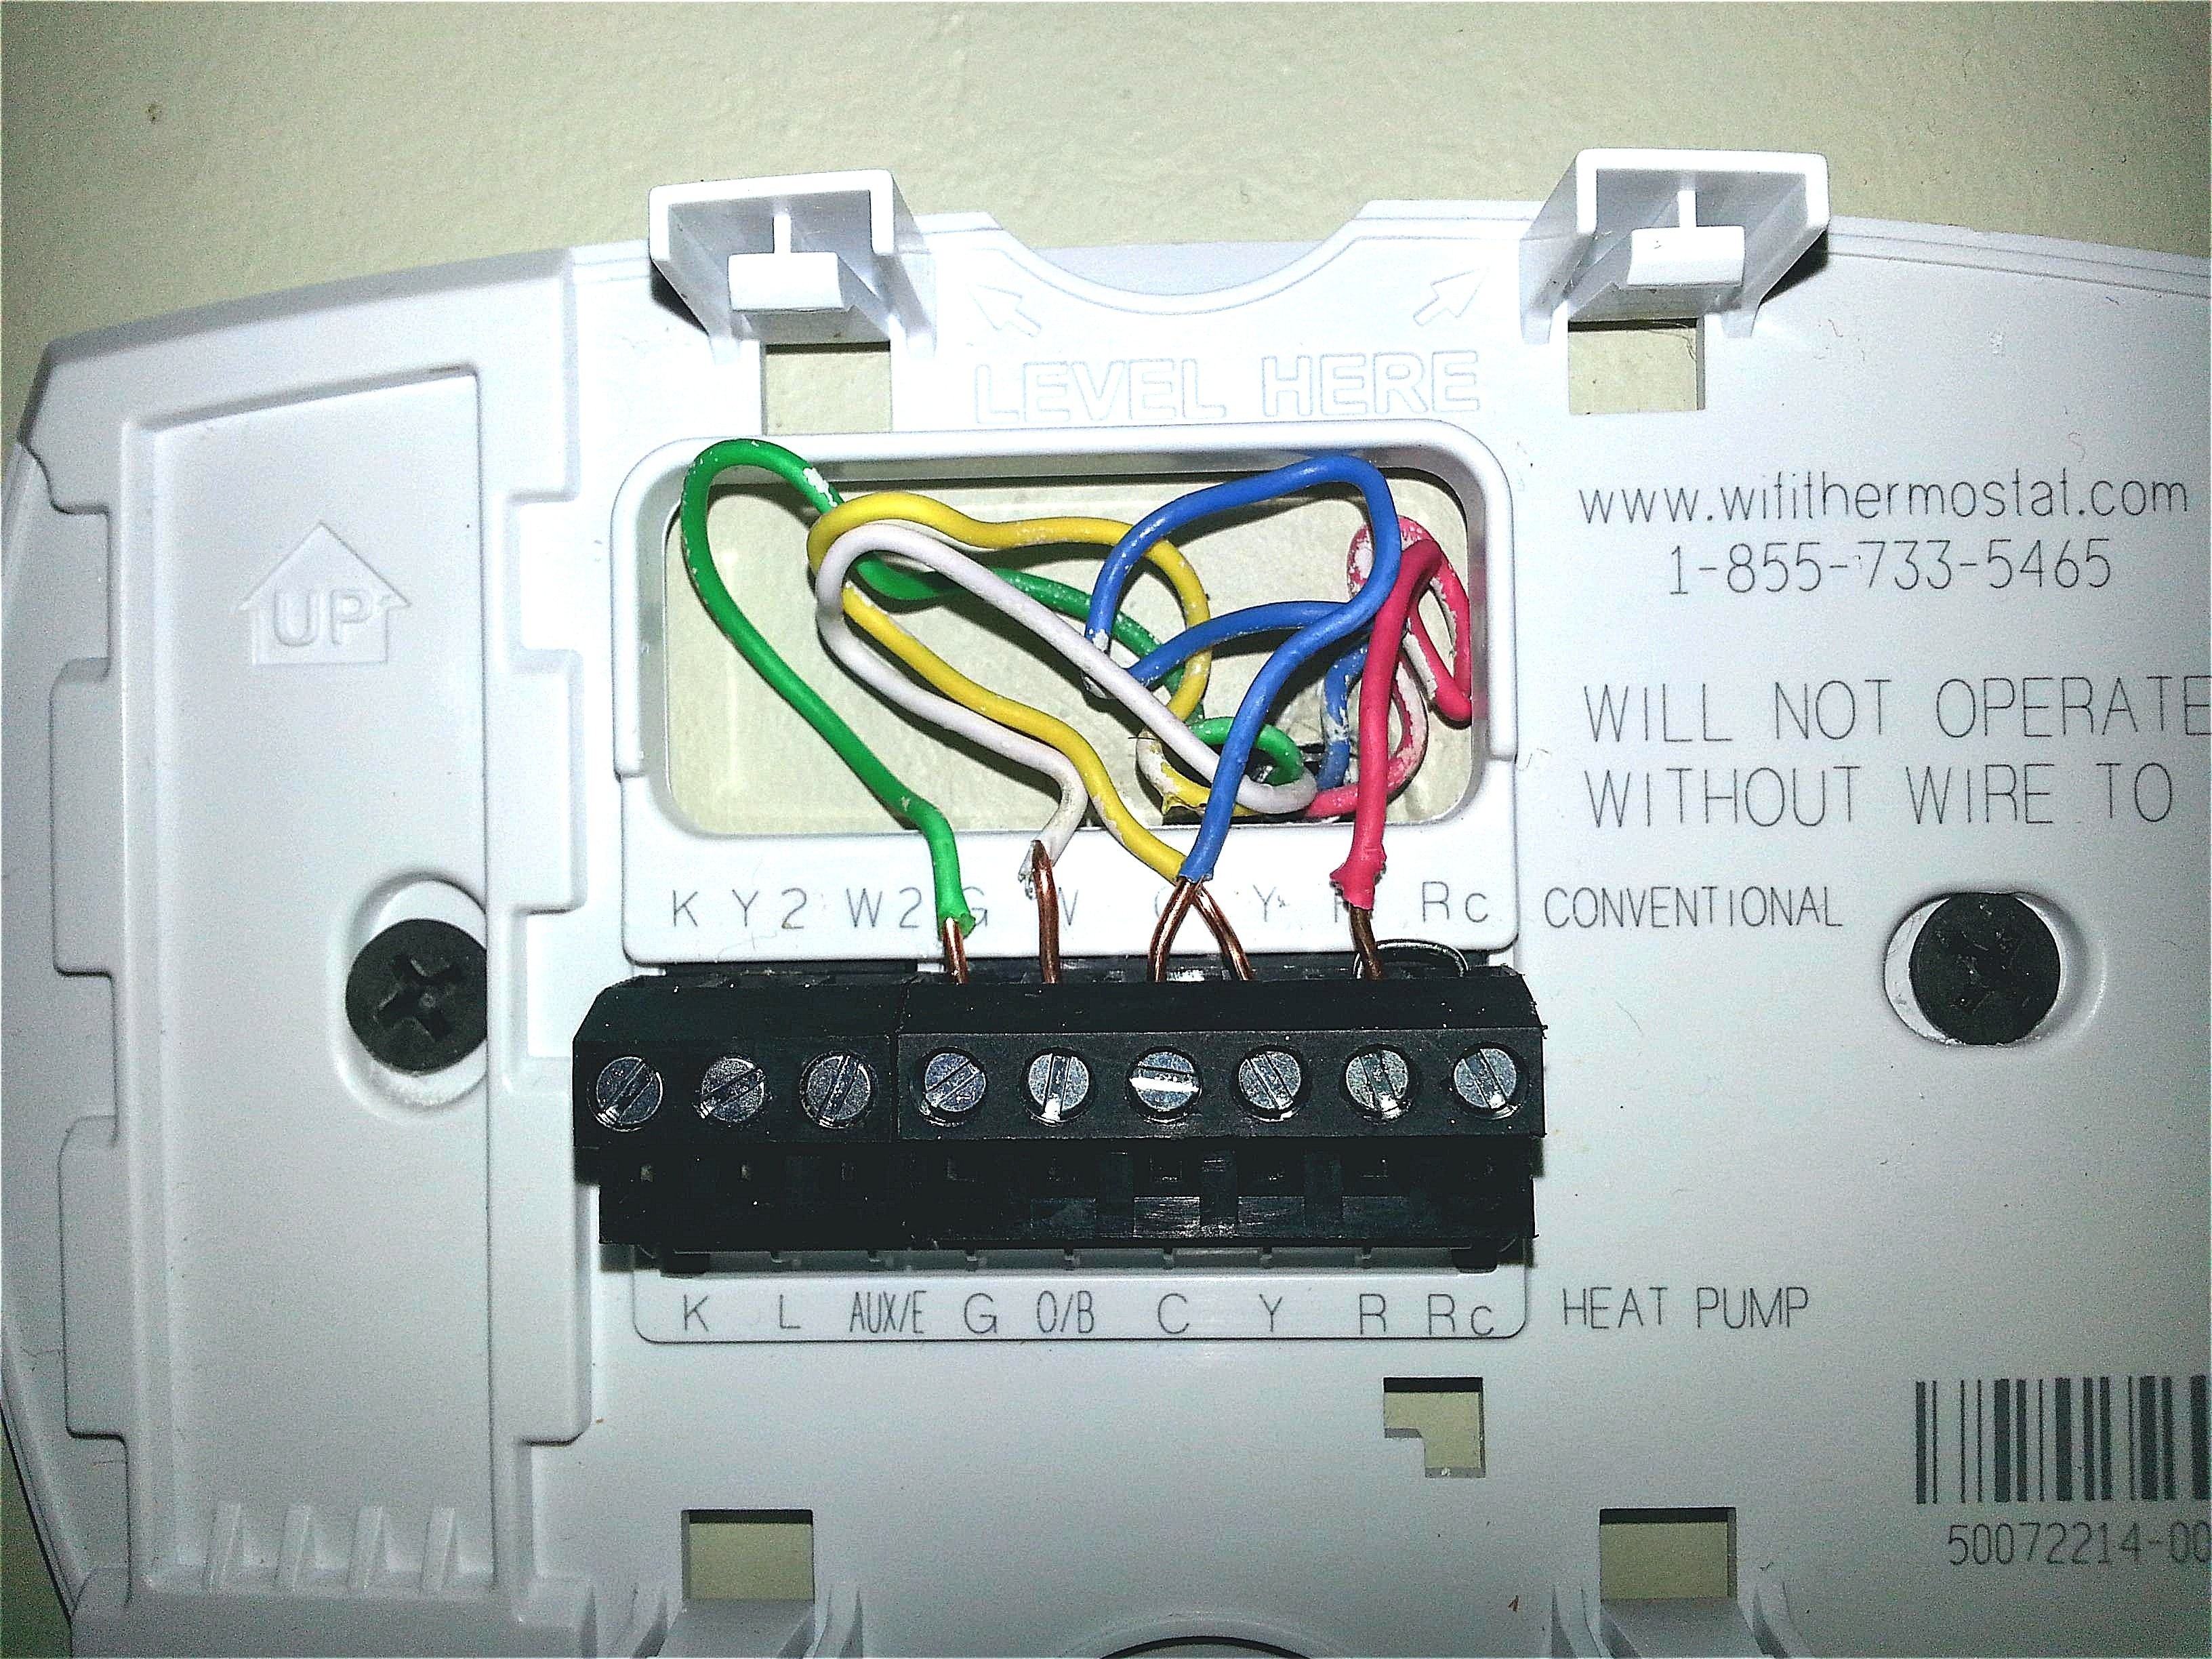 sensi thermostat wiring diagram Collection-honeywell wifi thermostat wiring diagram Collection Wifi wiring diagram honeywell heat pump thermostat marvelous design DOWNLOAD Wiring Diagram 8-b